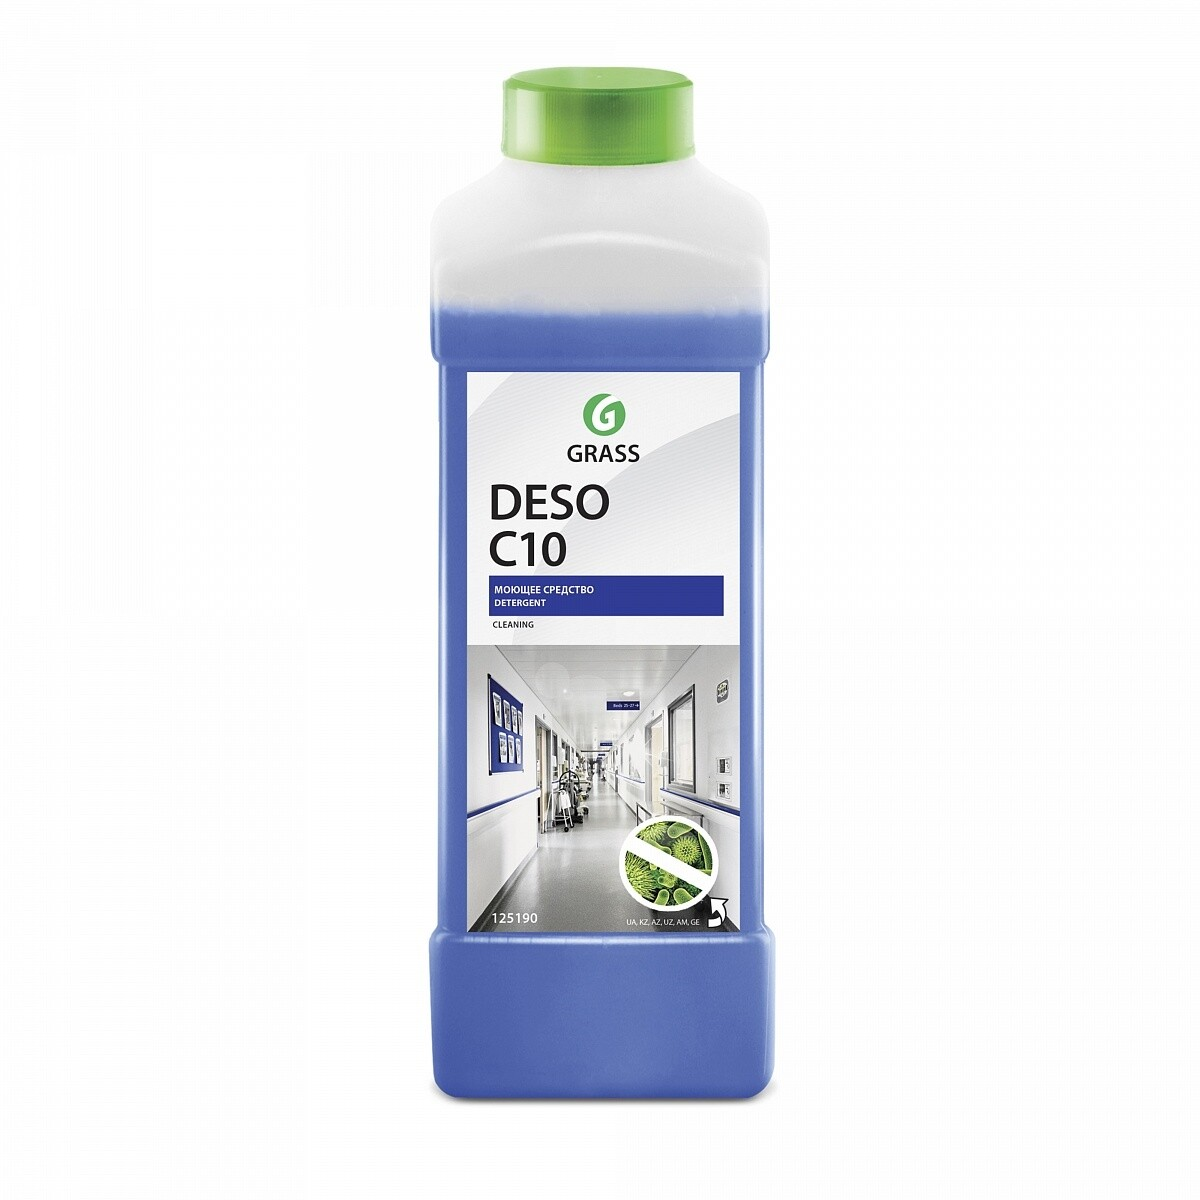 Detergent with disinfection effect deso с10, 1 l